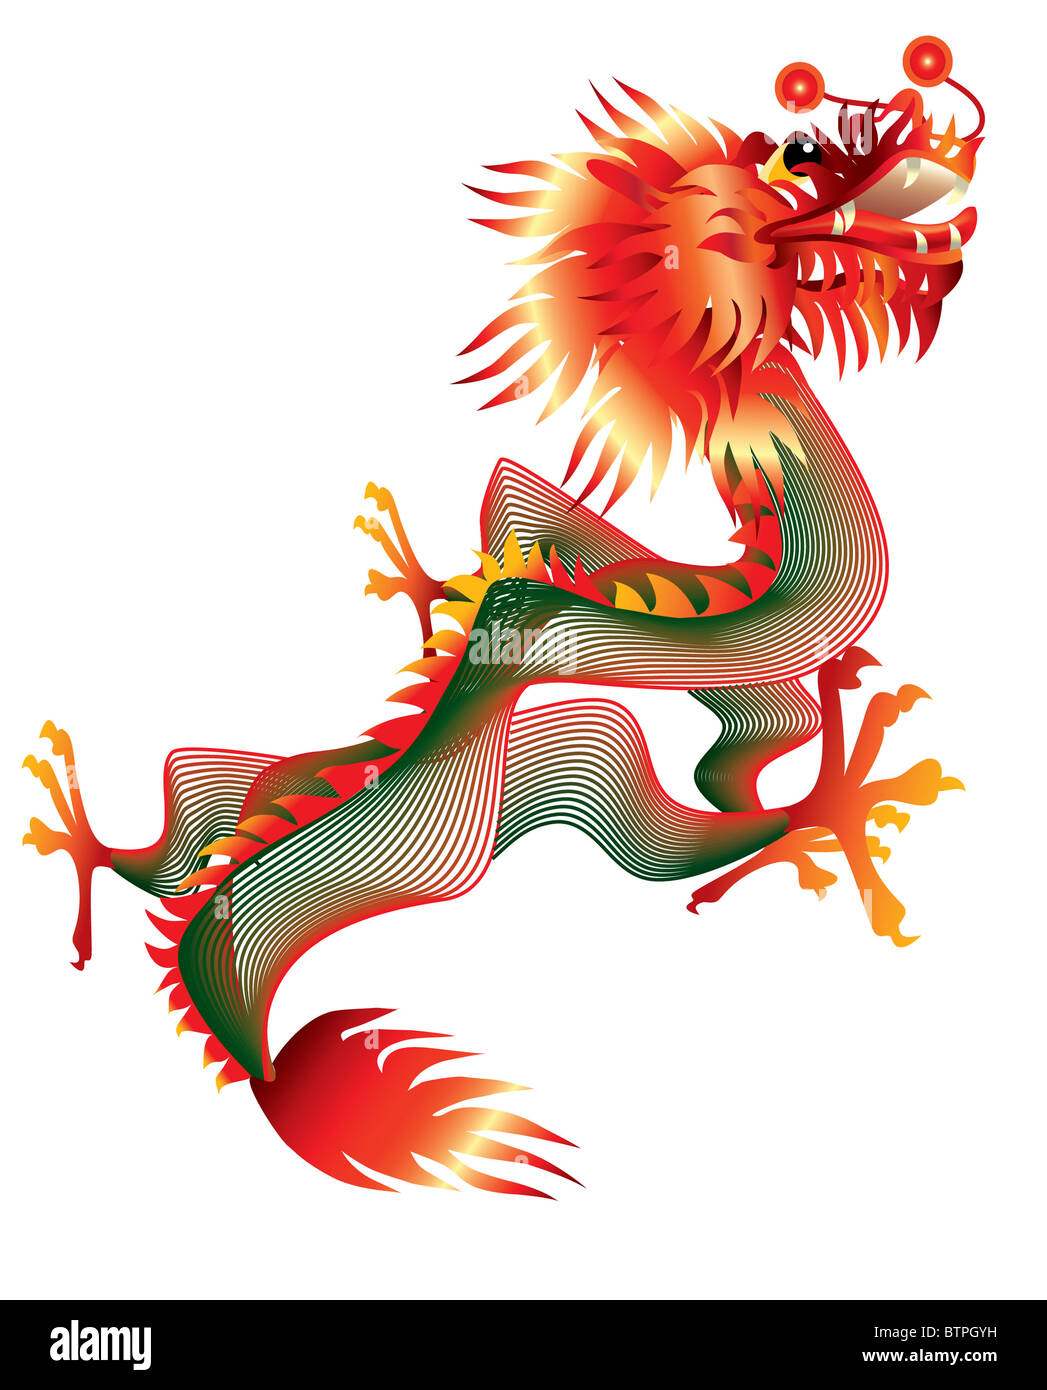 Chinese Horoscope Dragon Stock Photos & Chinese Horoscope Dragon